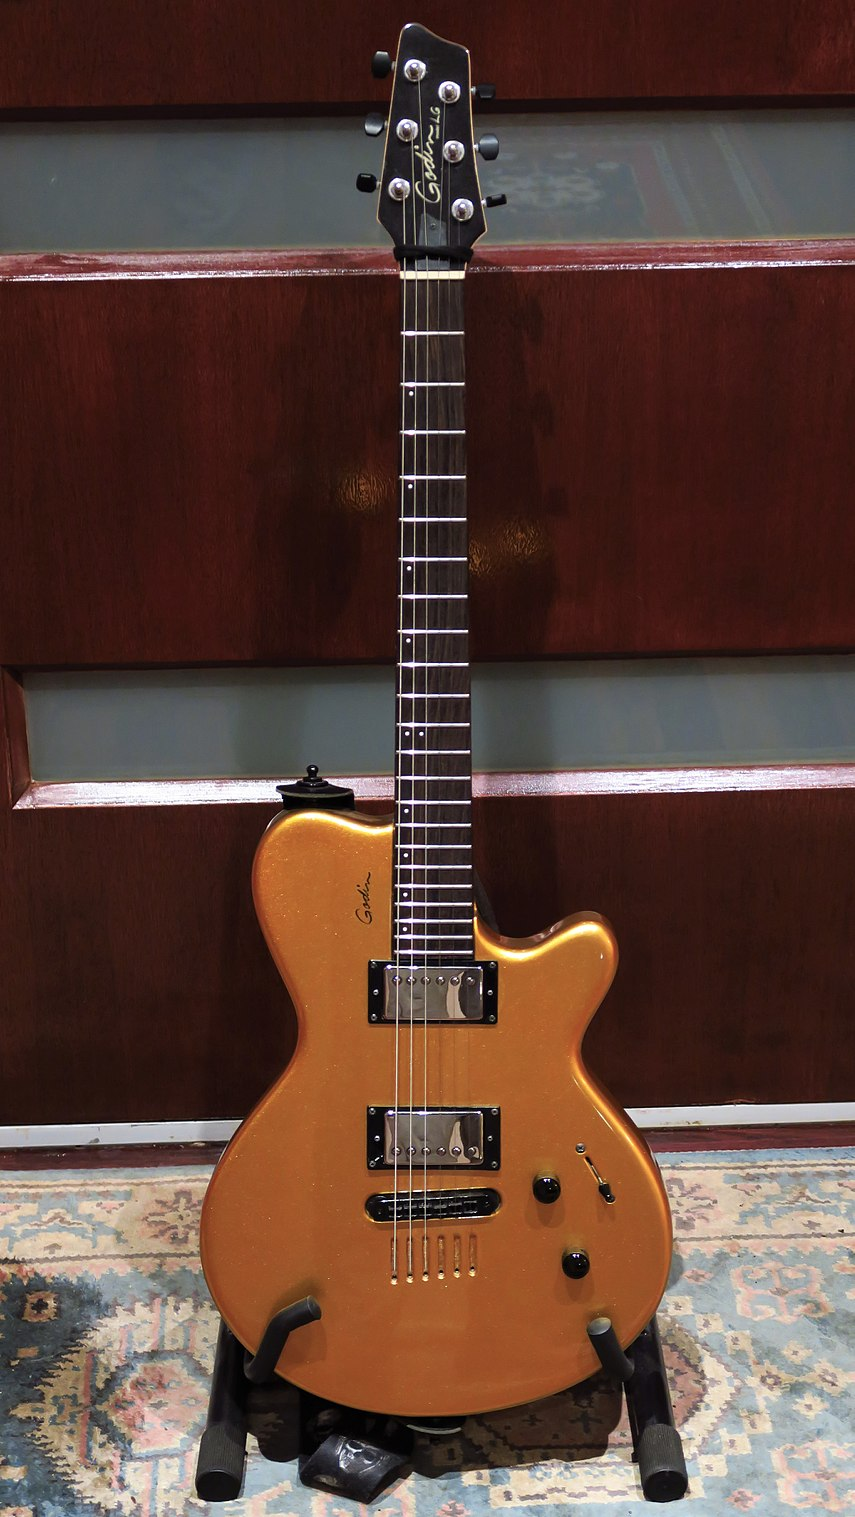 The 2004 model Godin LG Hmb with twin humbuckers